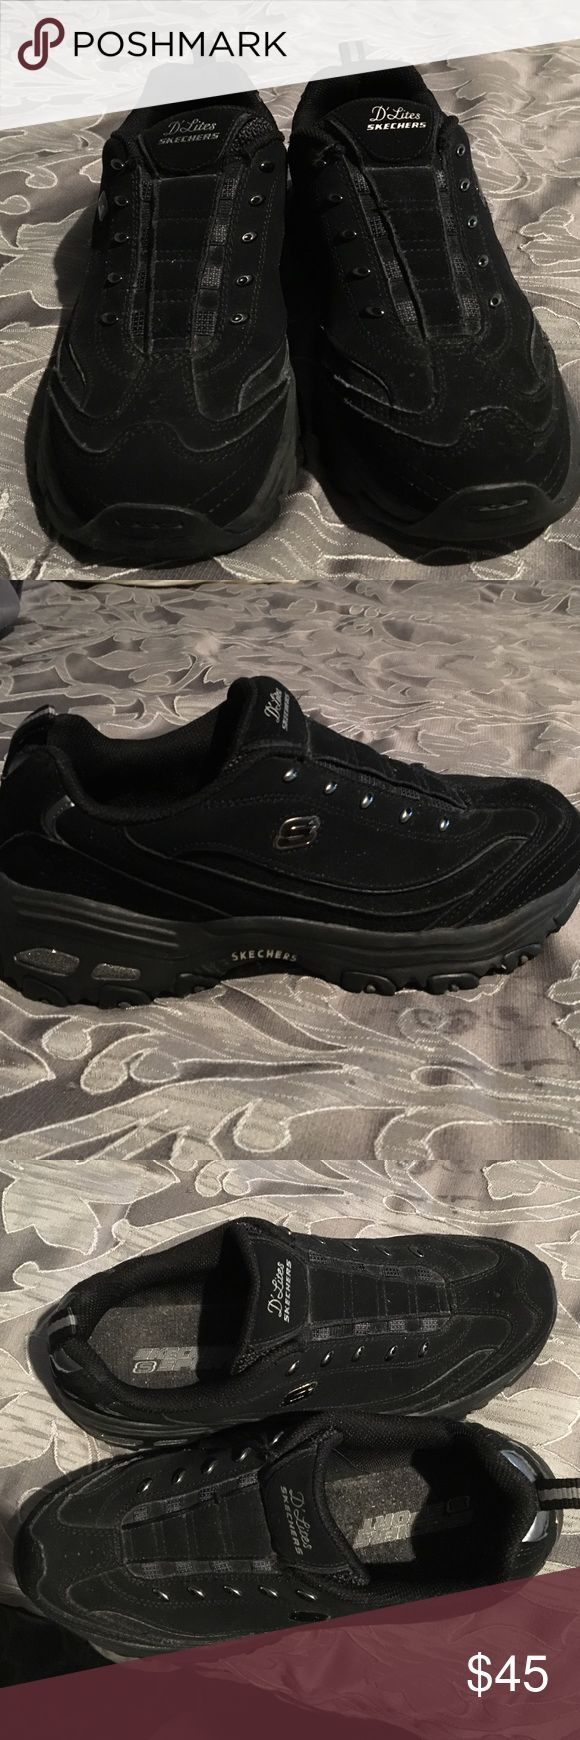 Skechers slip on D'lites Skechers sport D'lite sneakers. Gently worn one time. Slip on style size 8 paid $55 for them. Nice black color matches everything. Skechers Shoes Sneakers